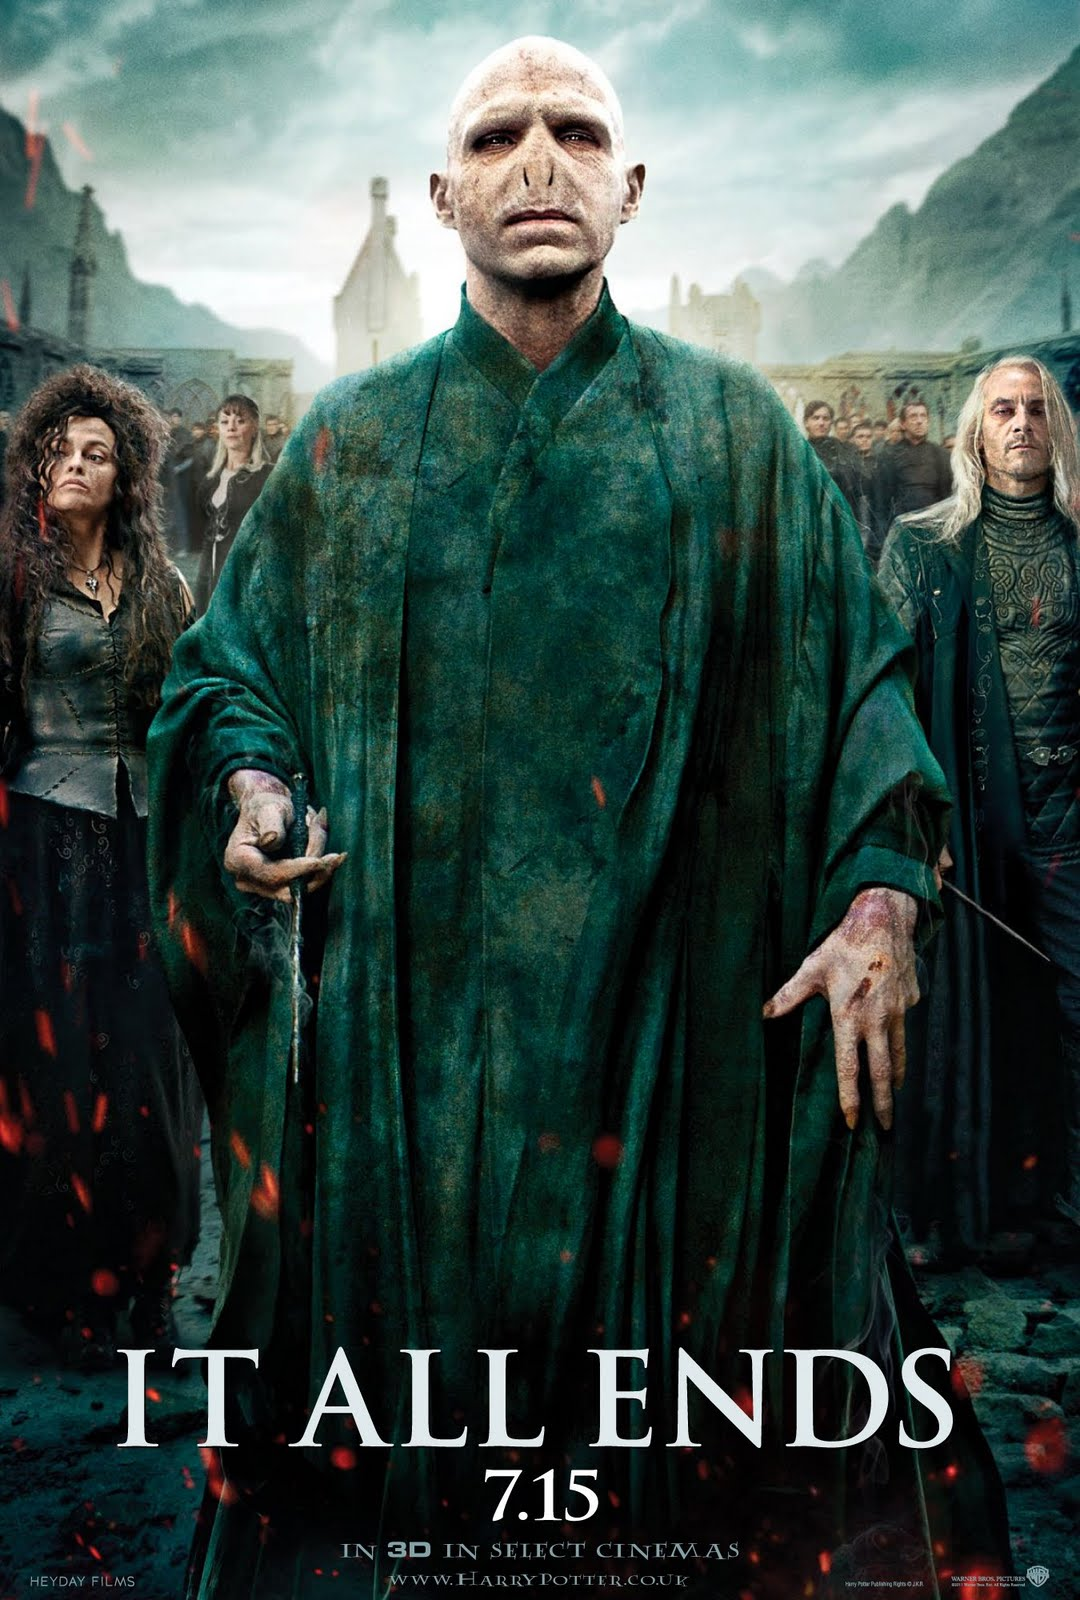 'Deathly Hallows: Part 2' 'It All Ends' poster #2